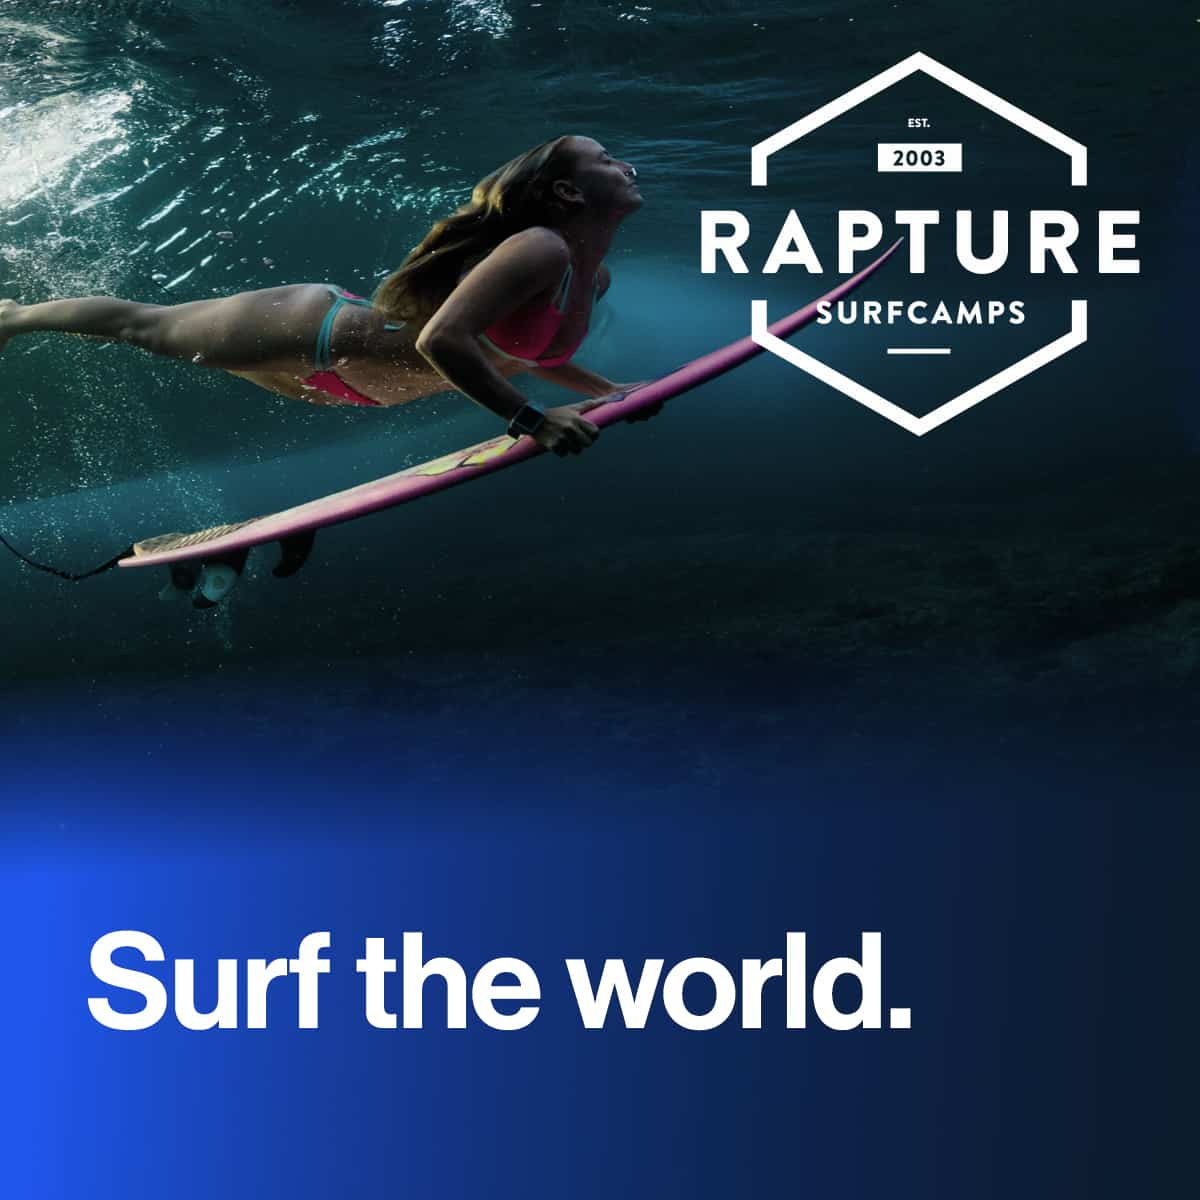 Rapture Surfcamps